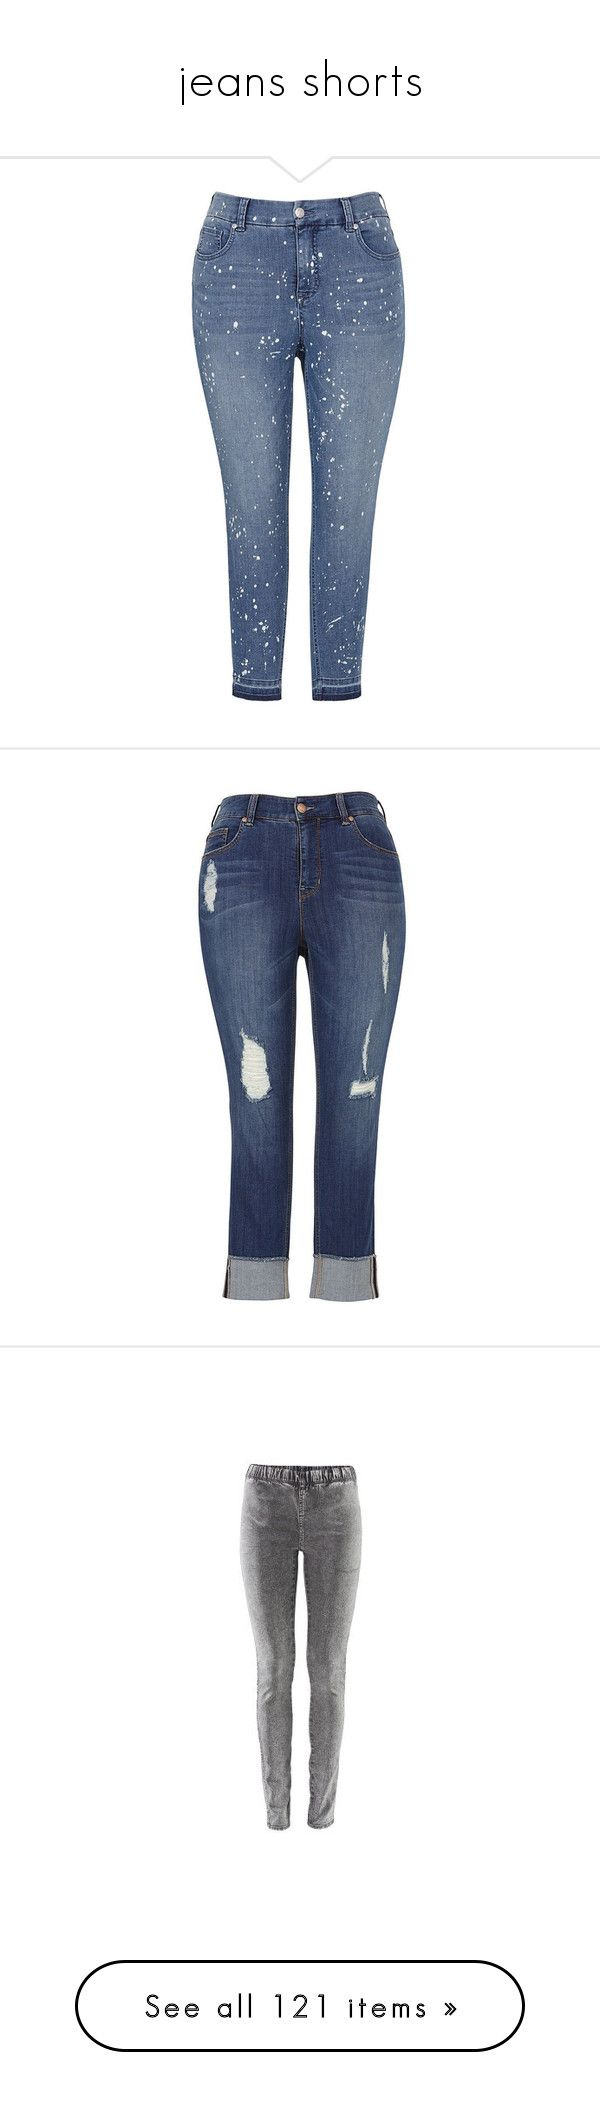 """""""jeans shorts"""" by nanette-253 ❤ liked on Polyvore featuring plus size women's fashion, plus size clothing, plus size jeans, blue, paint splatter skinny jeans, blue skinny jeans, zipper jeans, paint splatter jeans, melissa mccarthy seven7 and destruction jeans"""